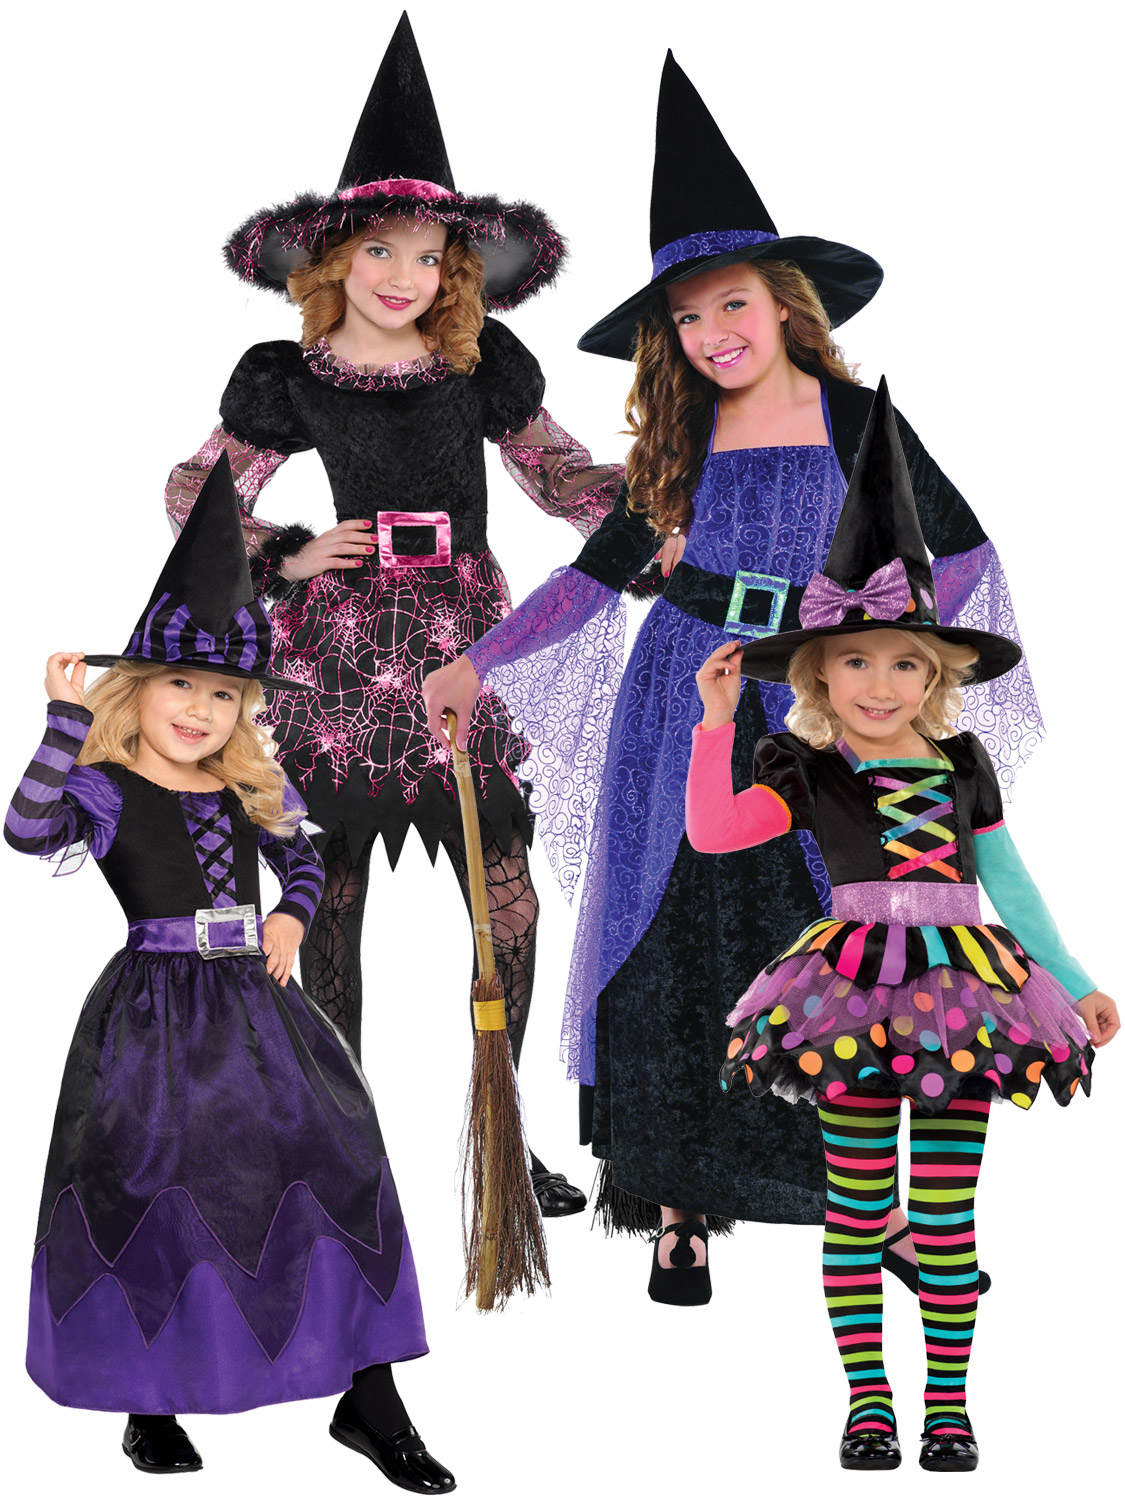 Halloween Costumes For Girls Age 10.Details About Age 3 10 Girls Halloween Witch Fancy Dress Costume Kids Childrens Party Witches